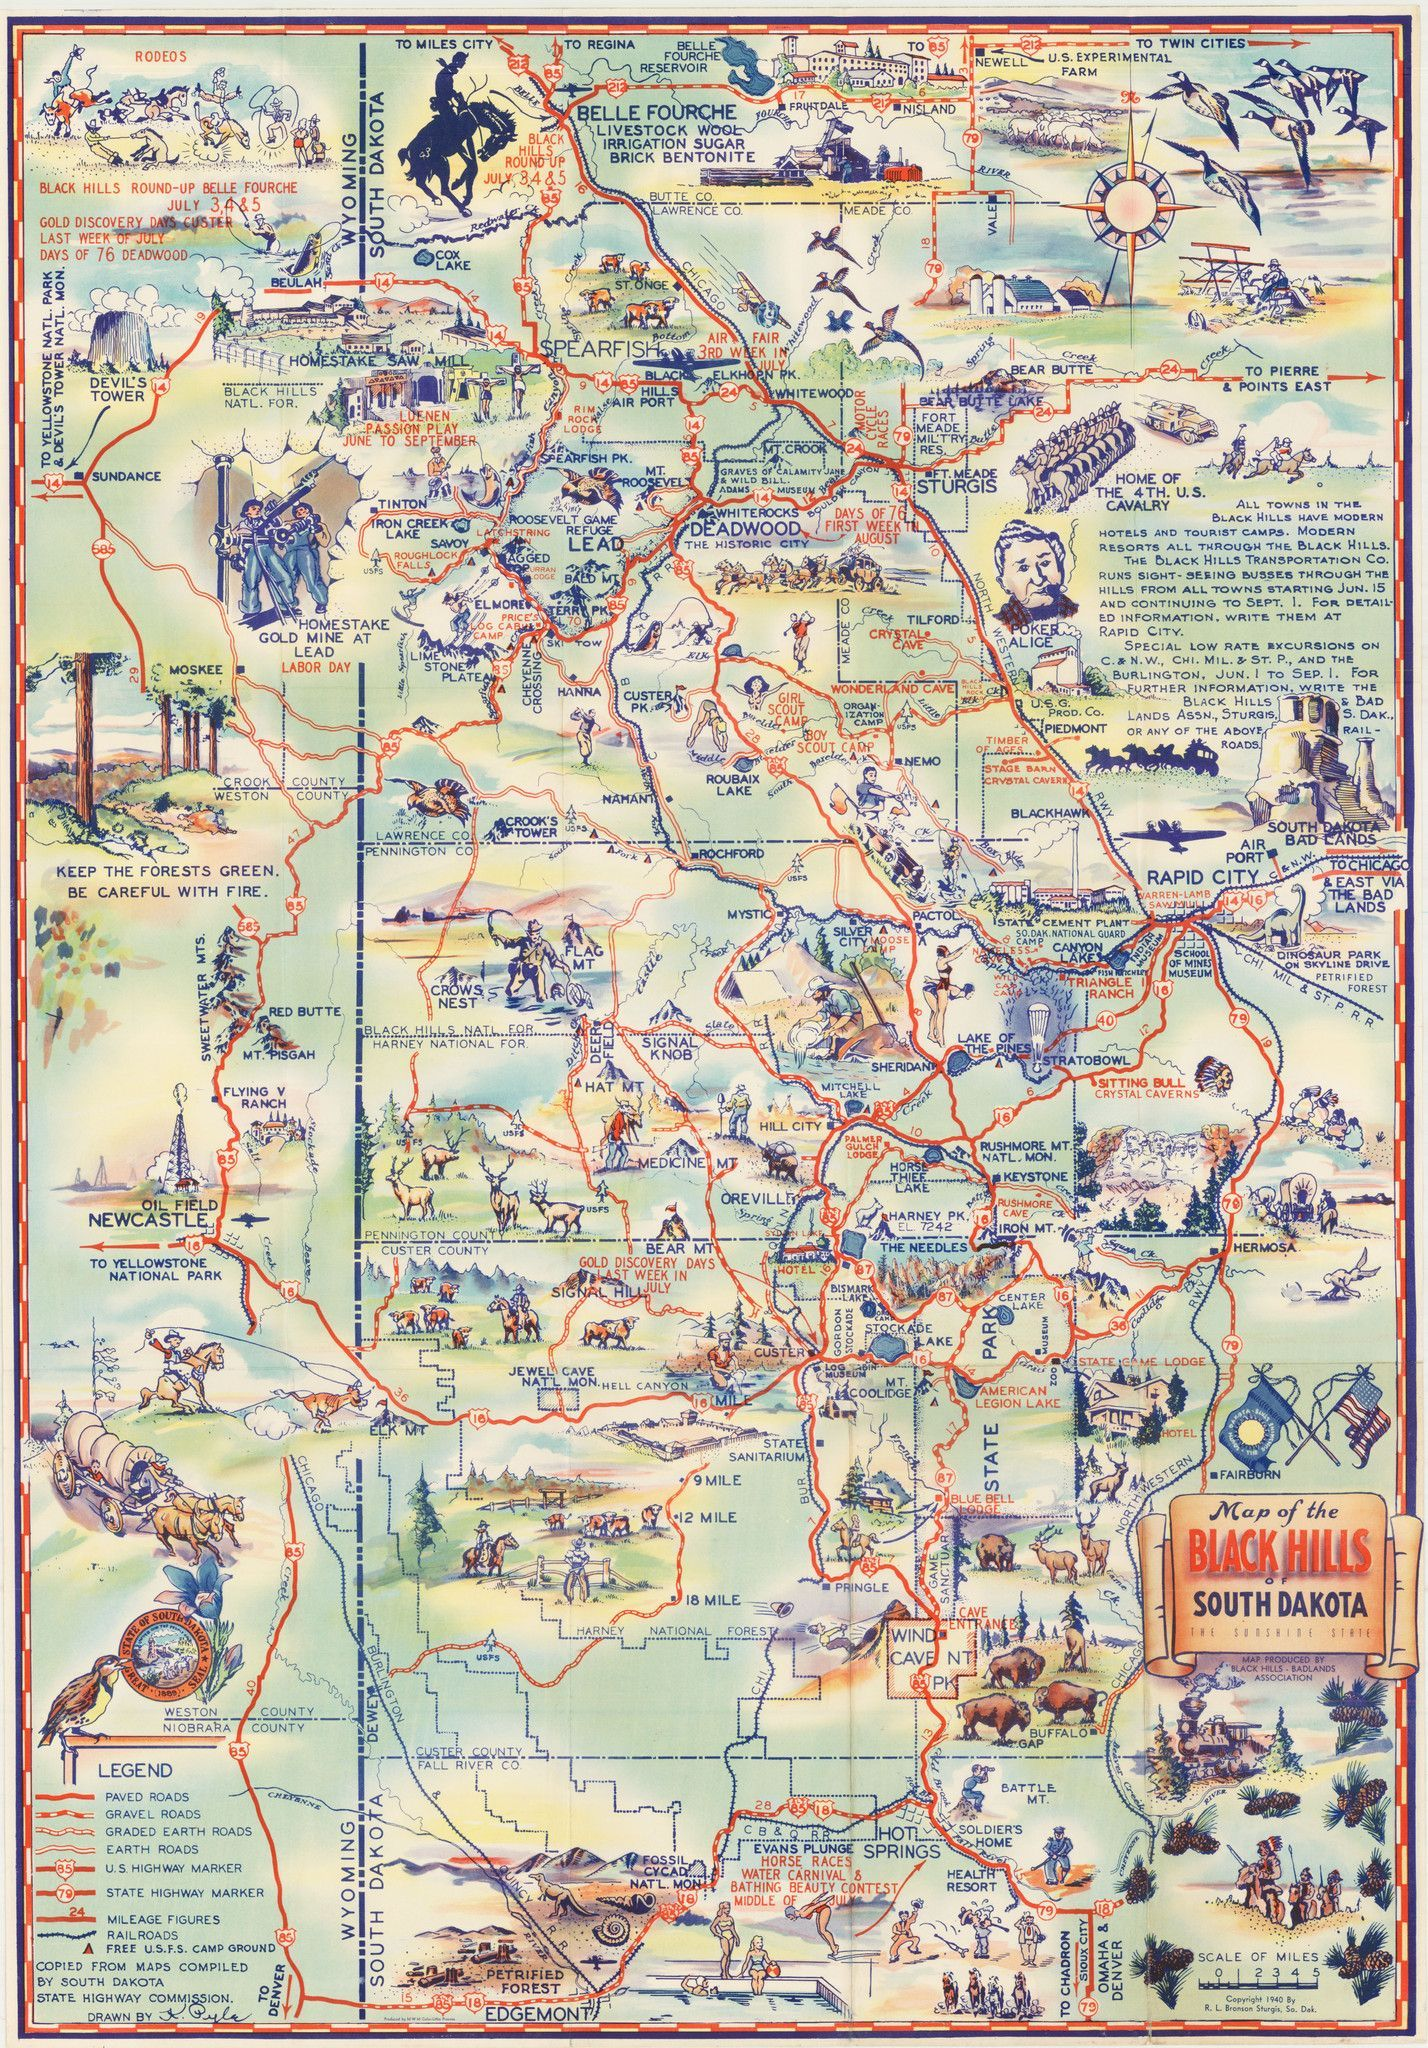 Family guide to Deadwood South Dakota – South Dakota Tourist Map